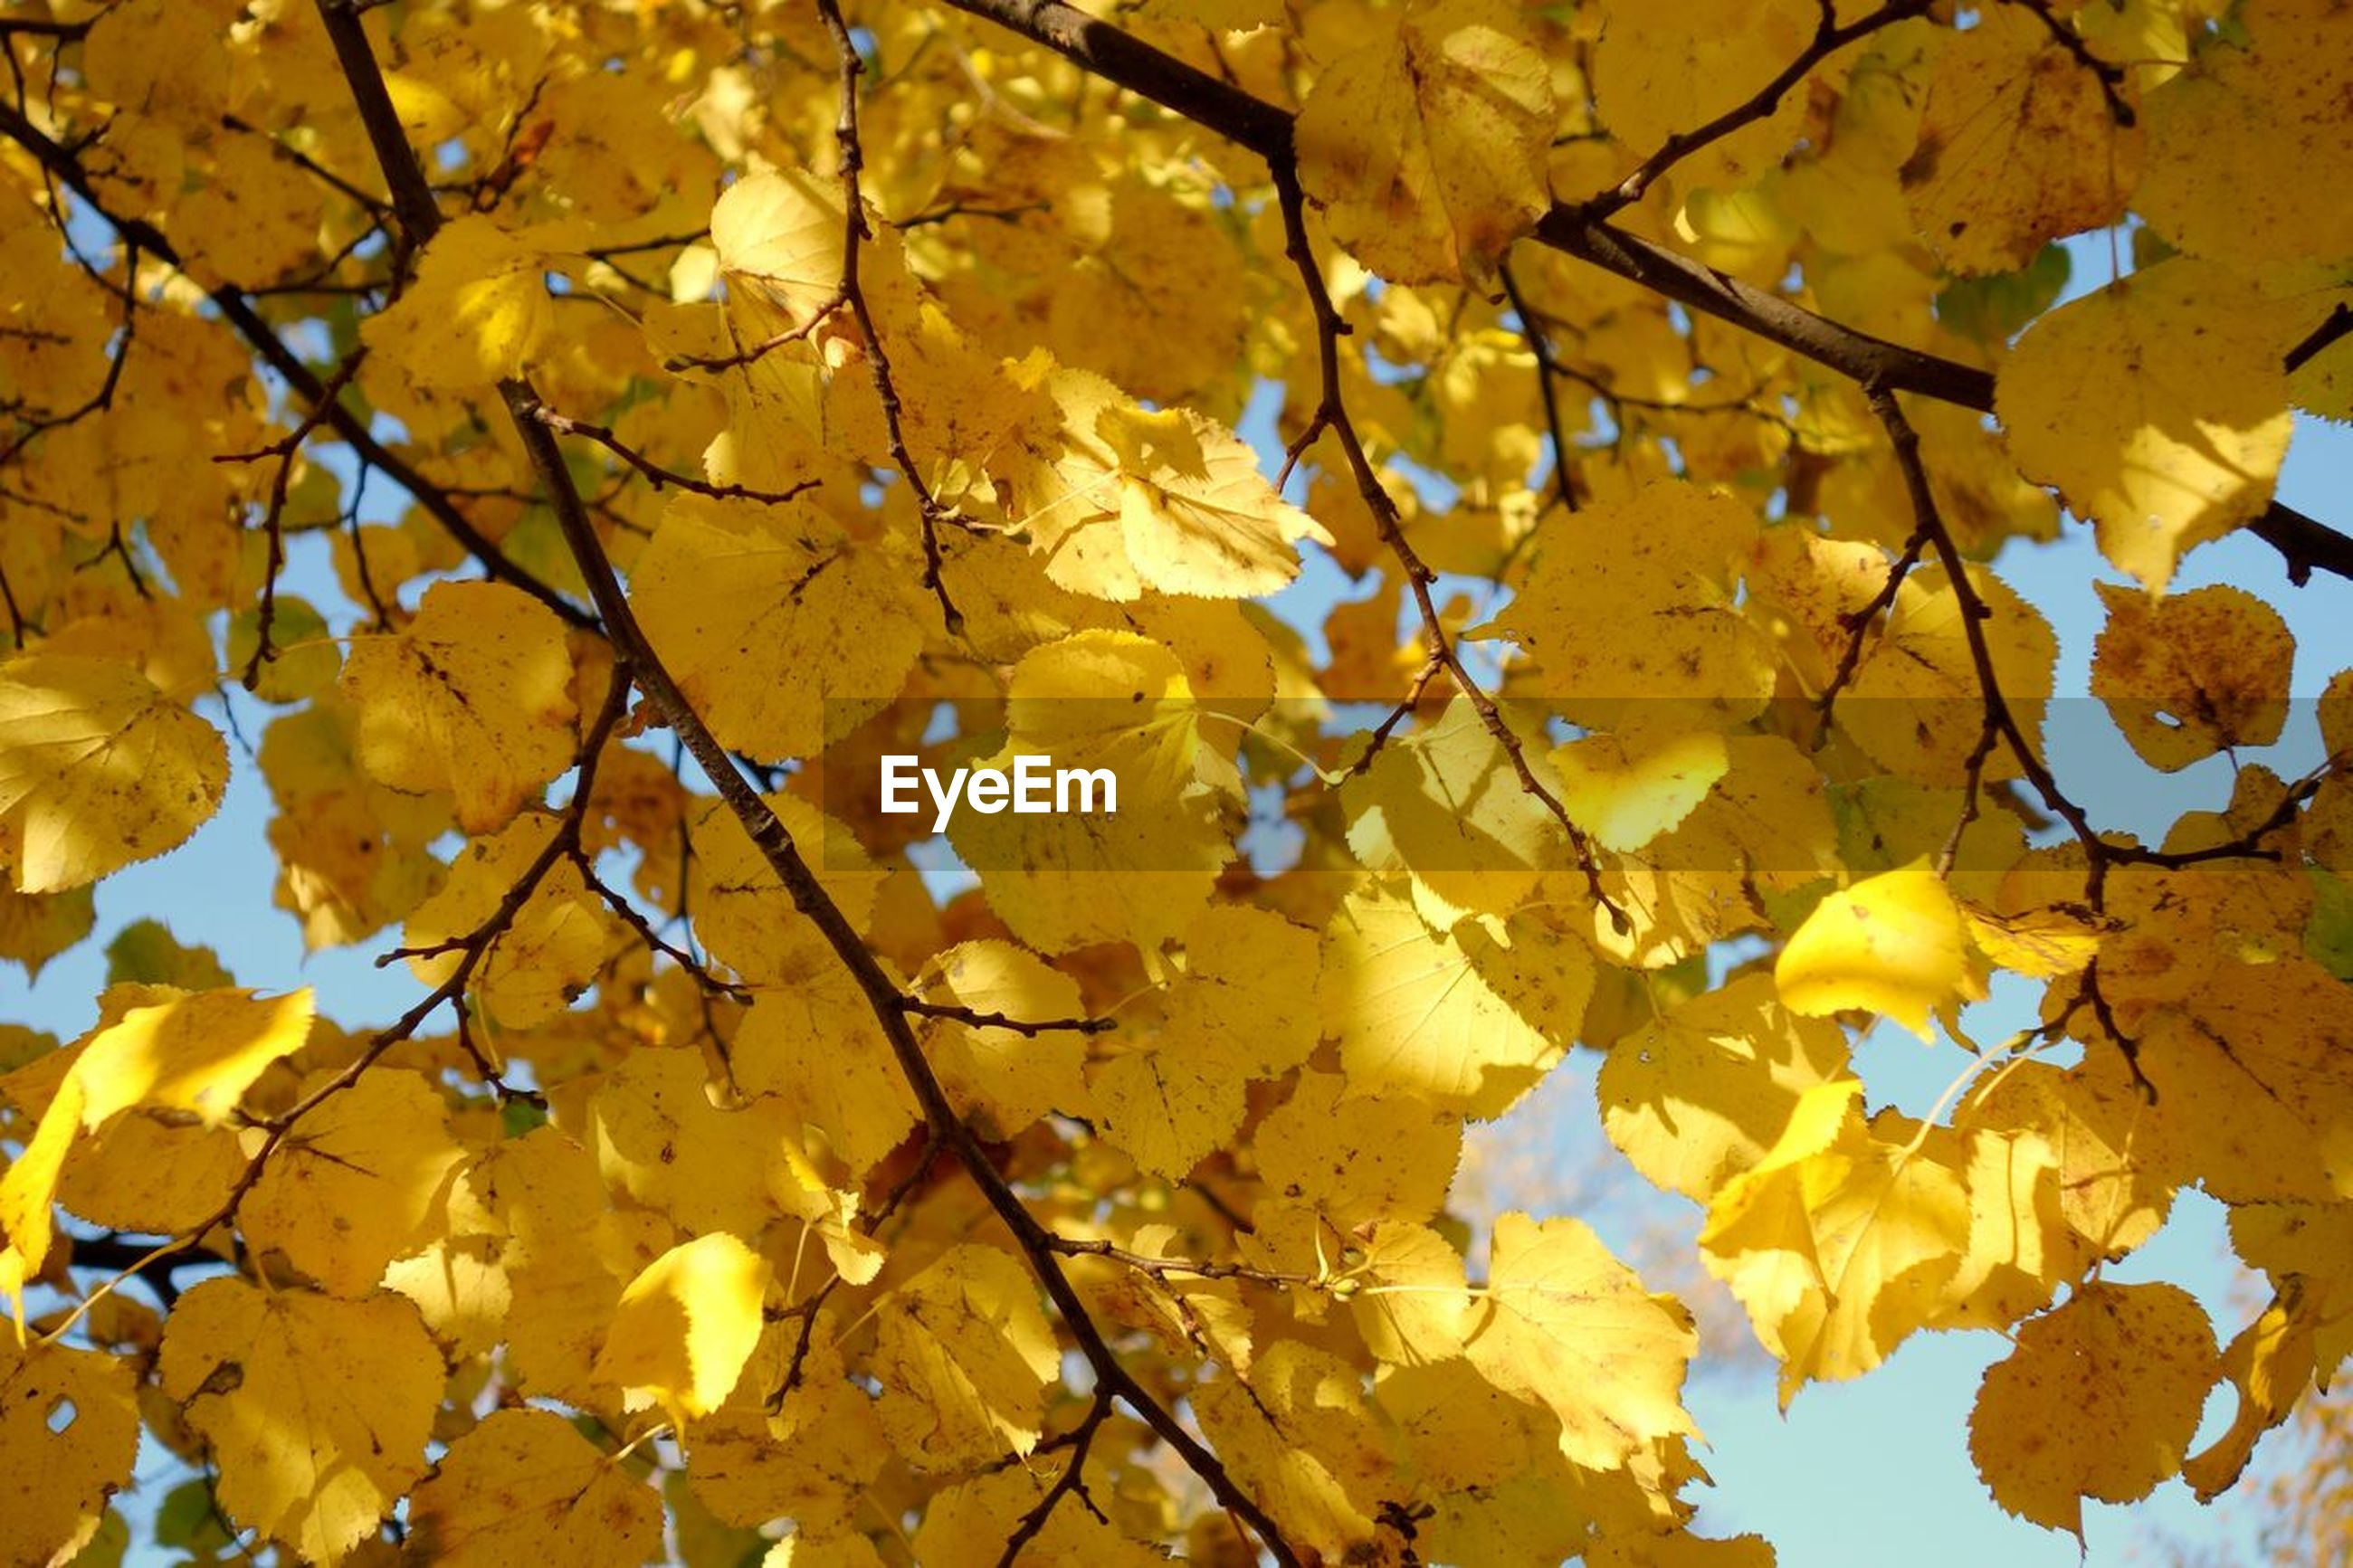 Close-up of yellow leaves of tree